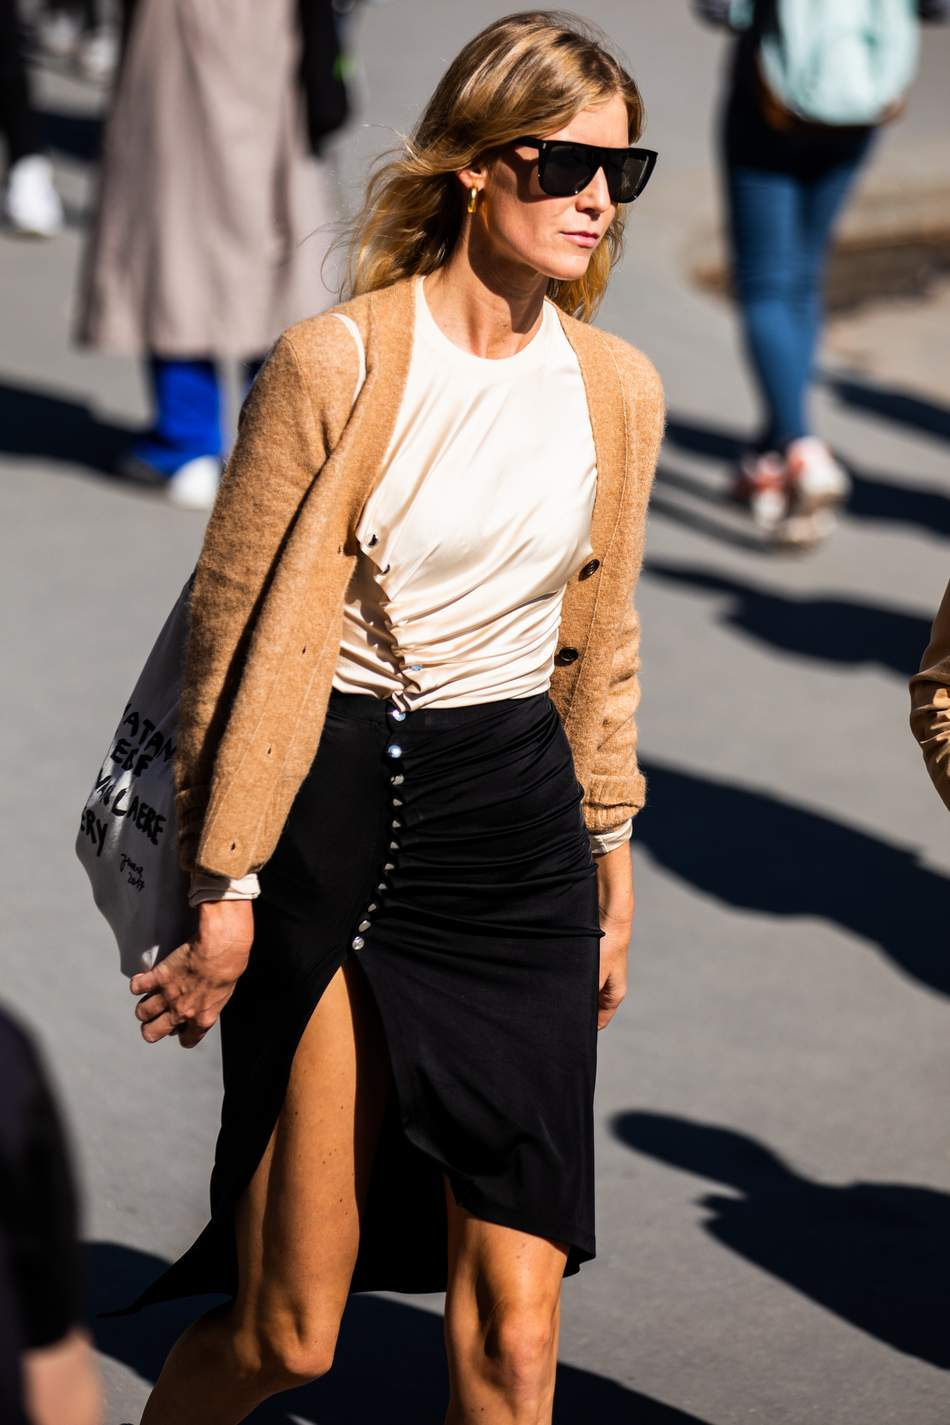 beige cardigan outfit street style